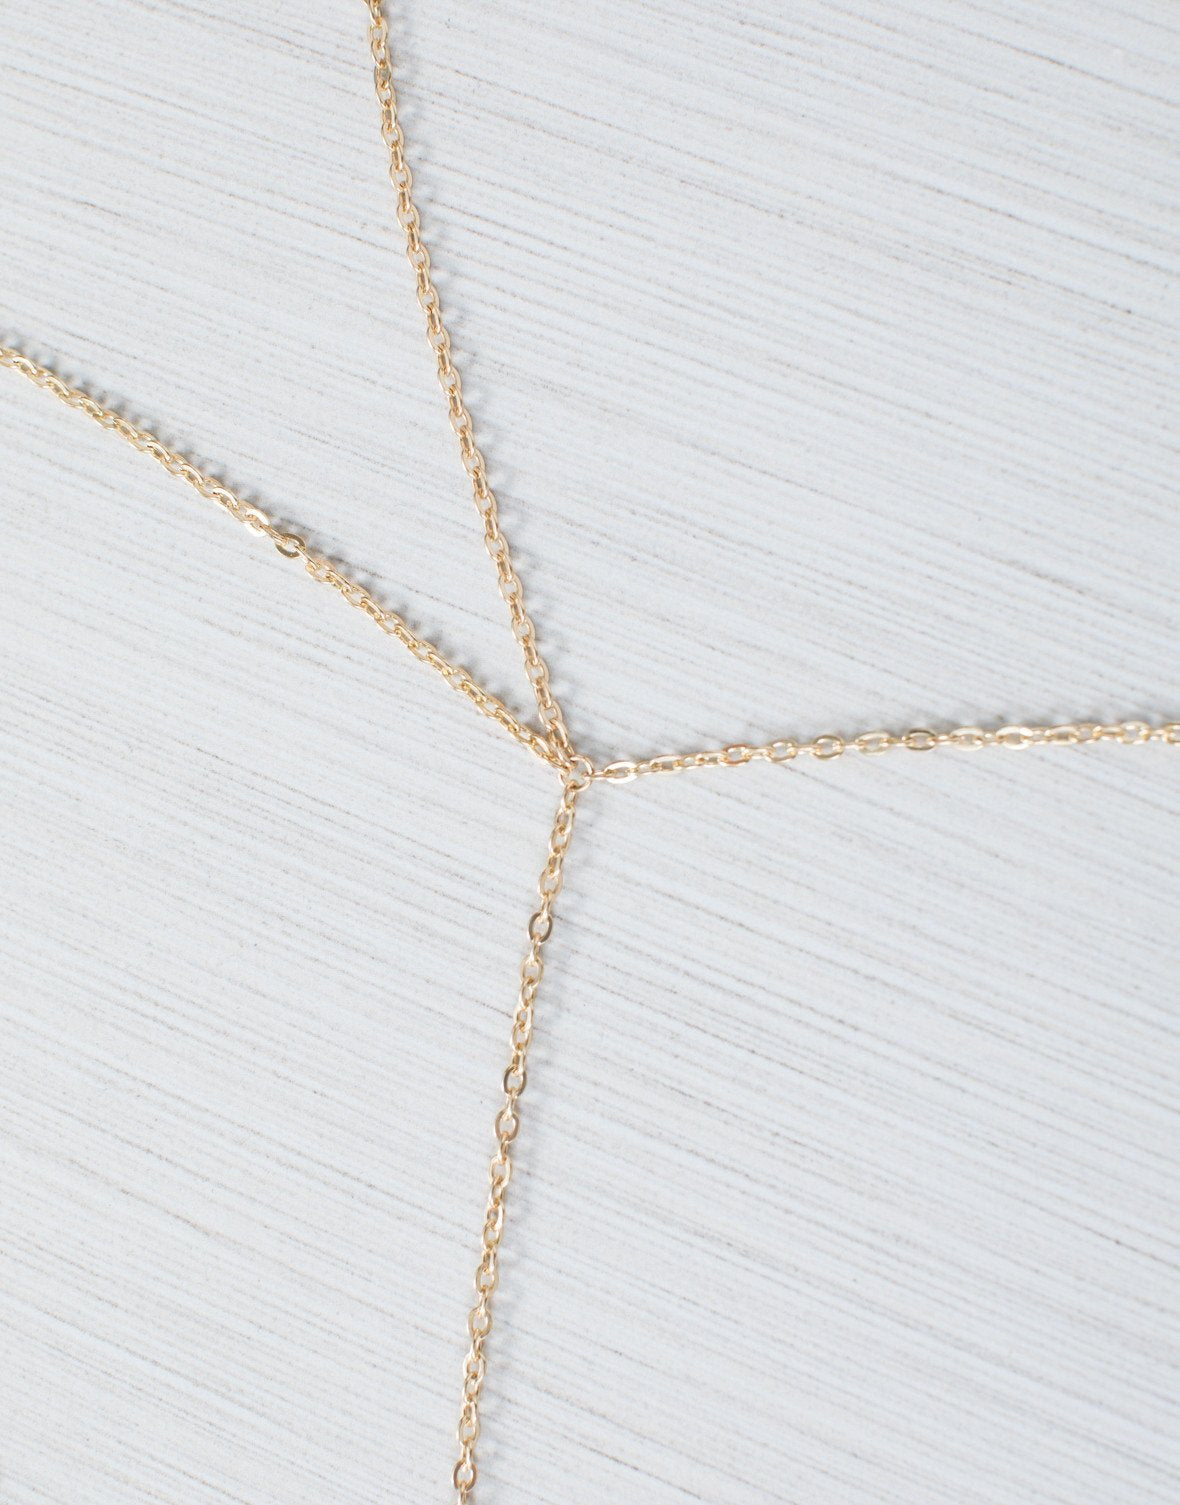 8db54c0e8a5cb Gold Caged in Body Chain - Front View  Caged in Body Chain ...